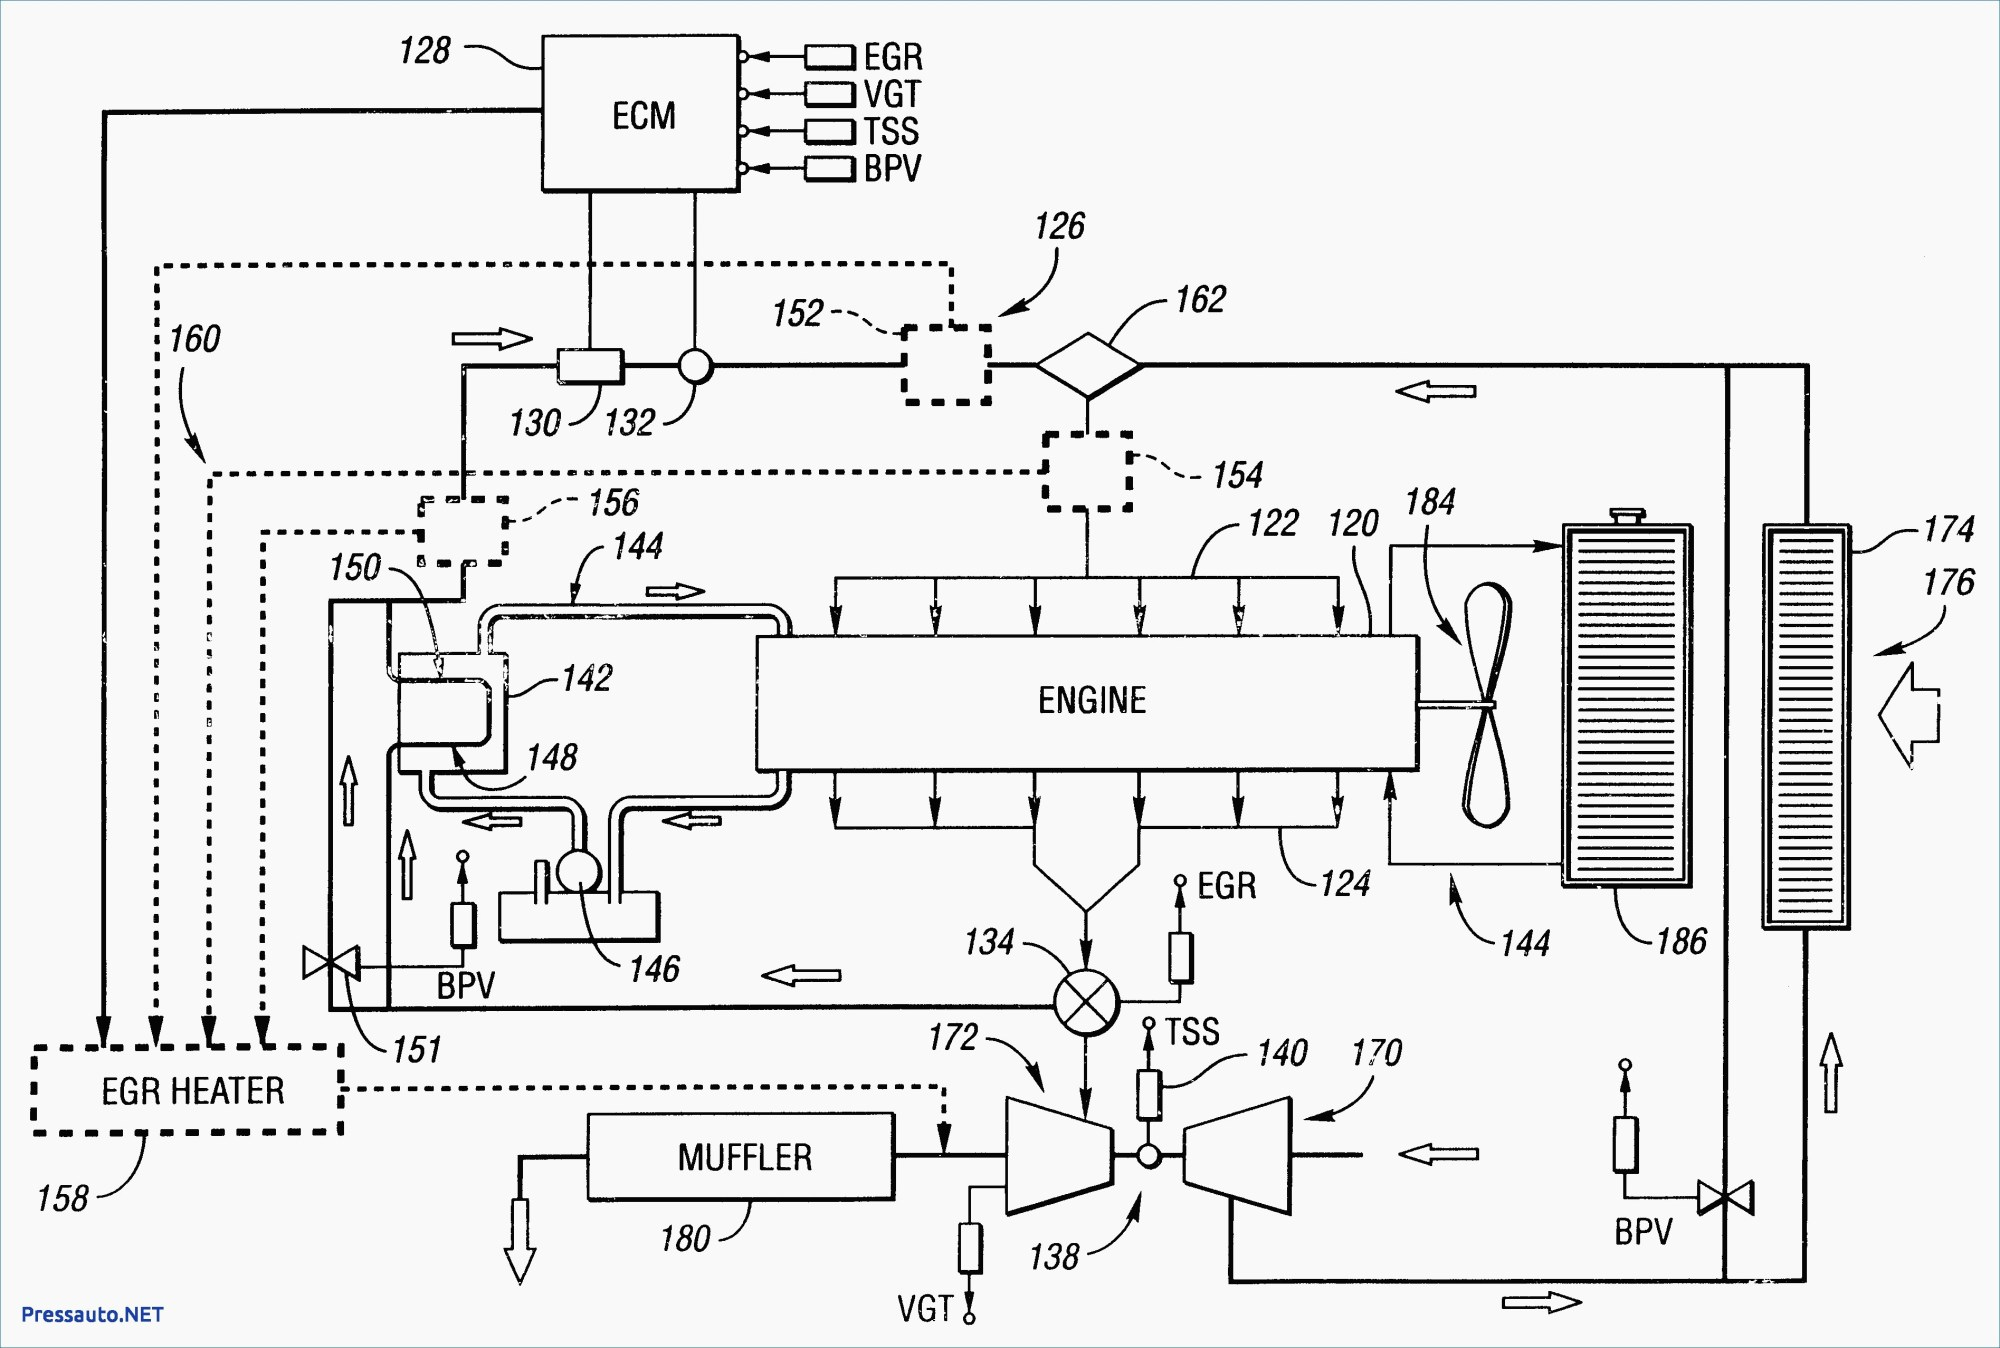 hight resolution of electric furnace sequencer wiring diagram new wiring diagram image mobile home electric furnace sequencer circuit diagram